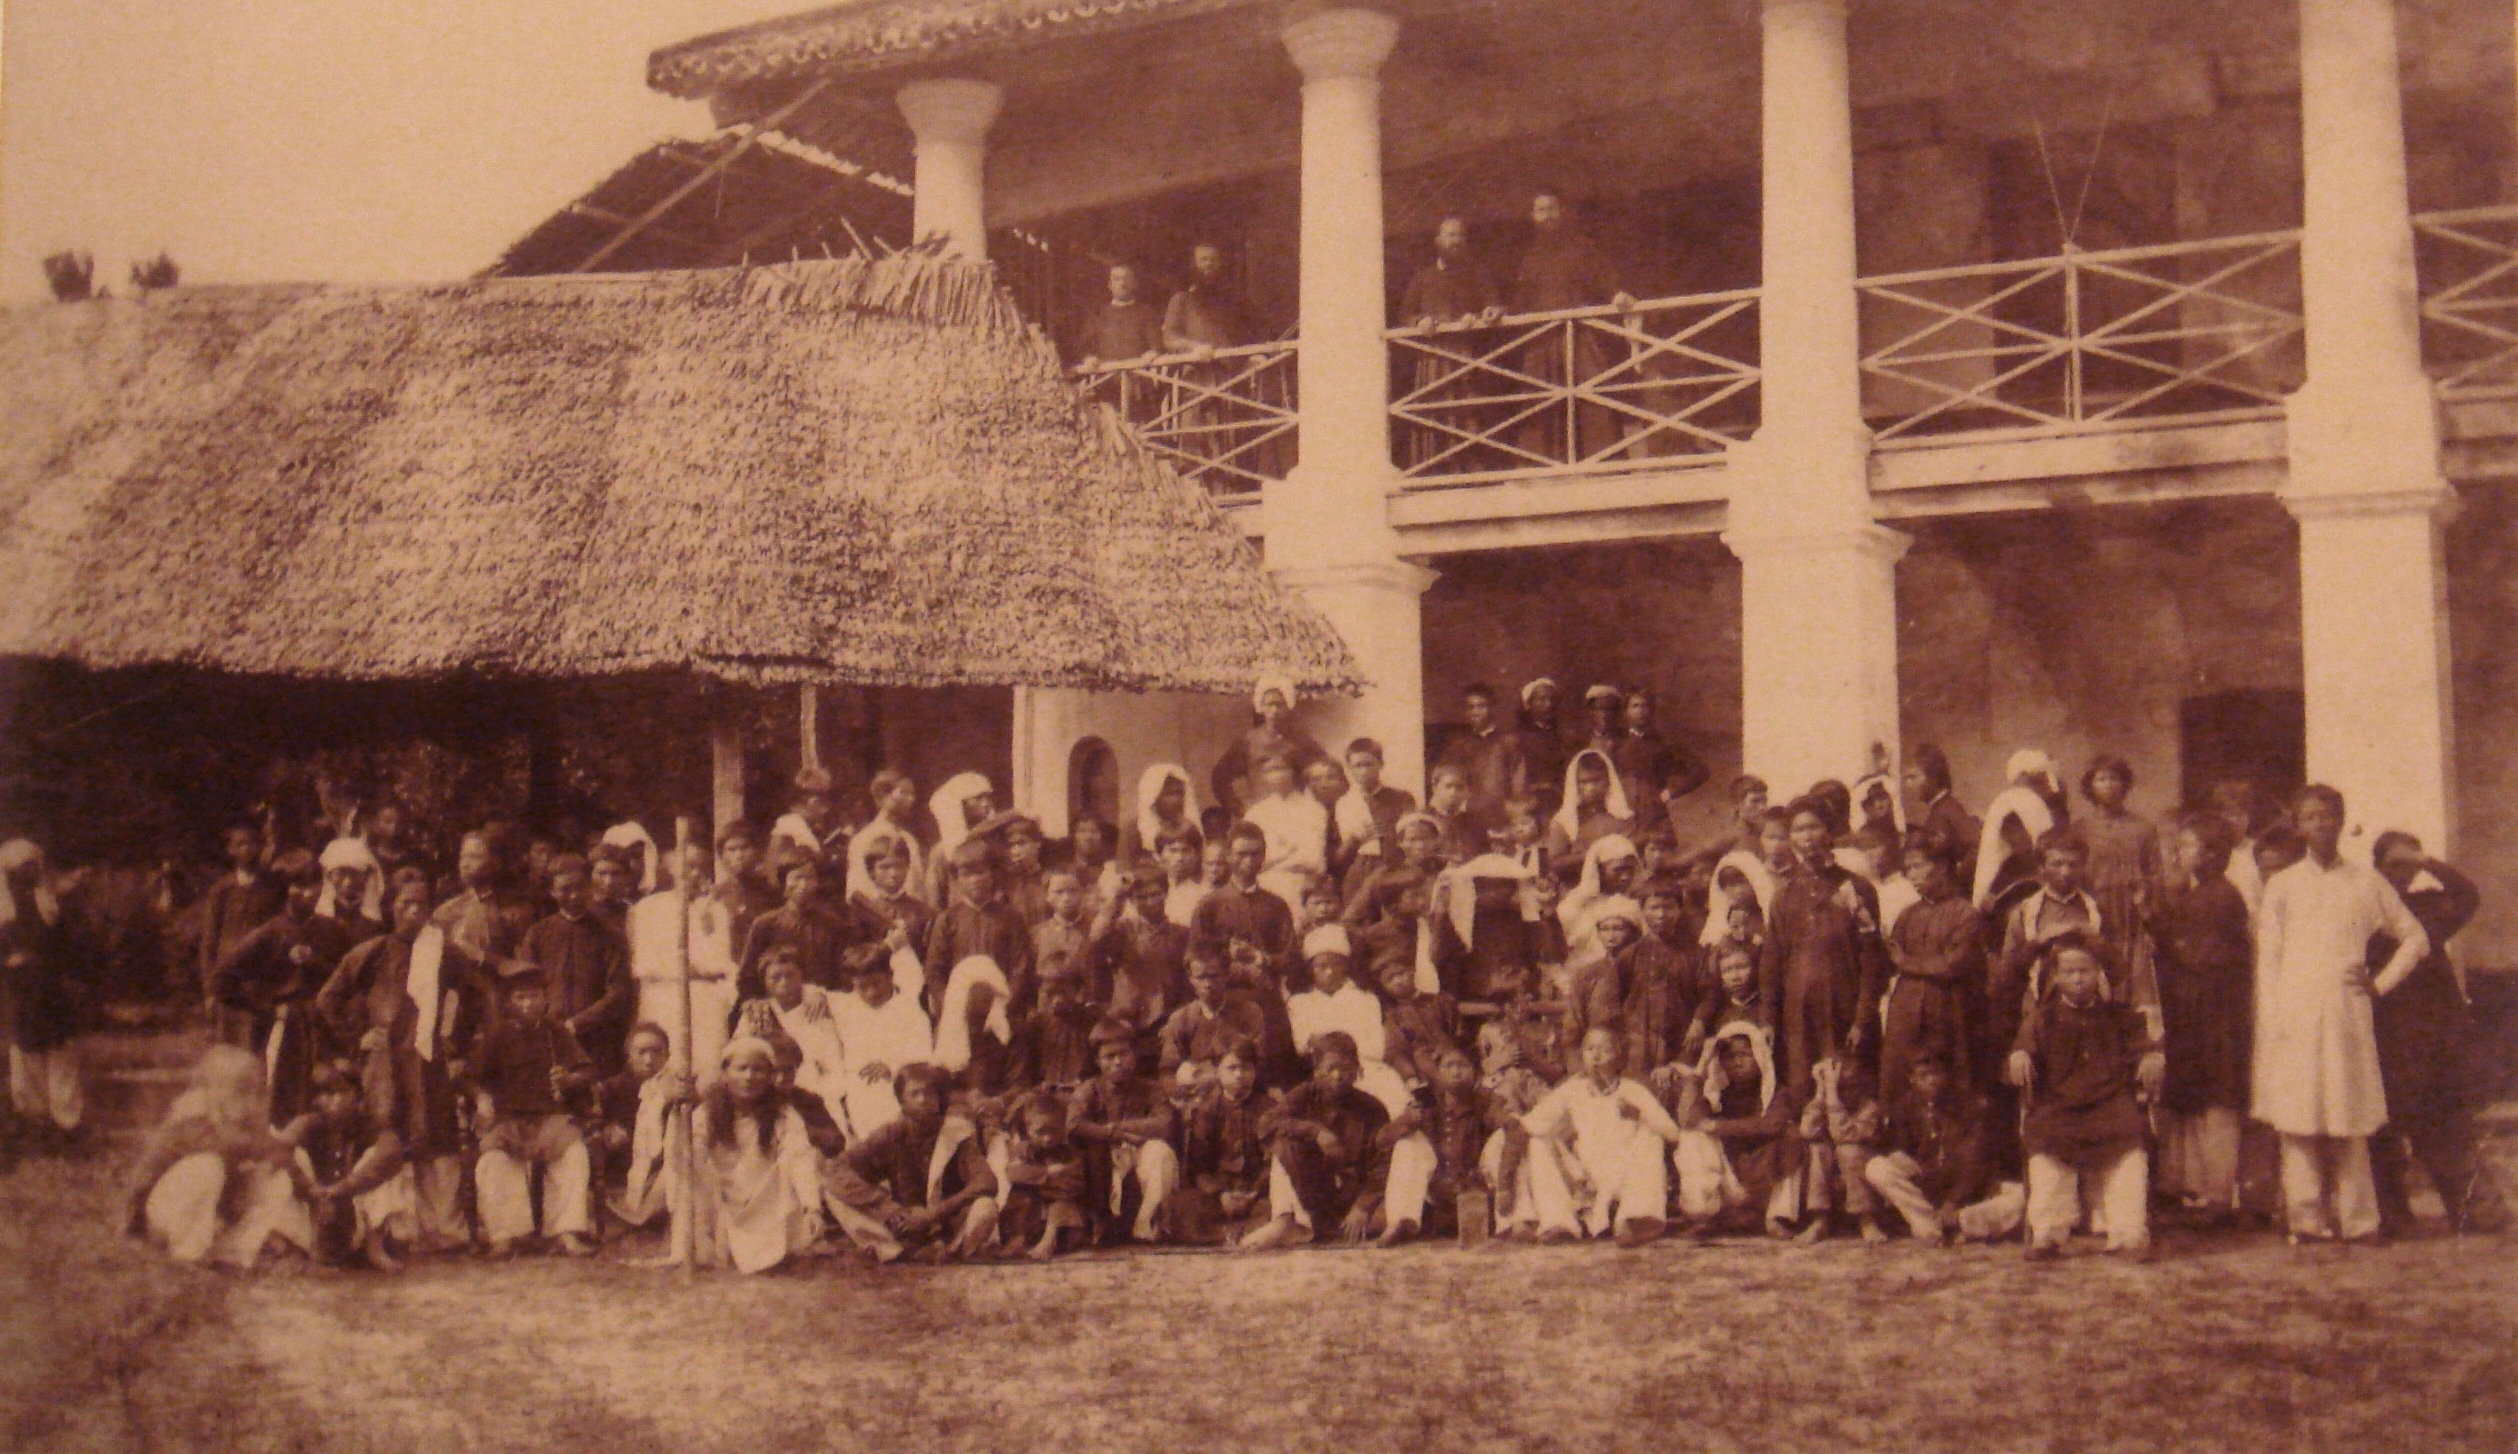 File:College General Penang 1866.jpg